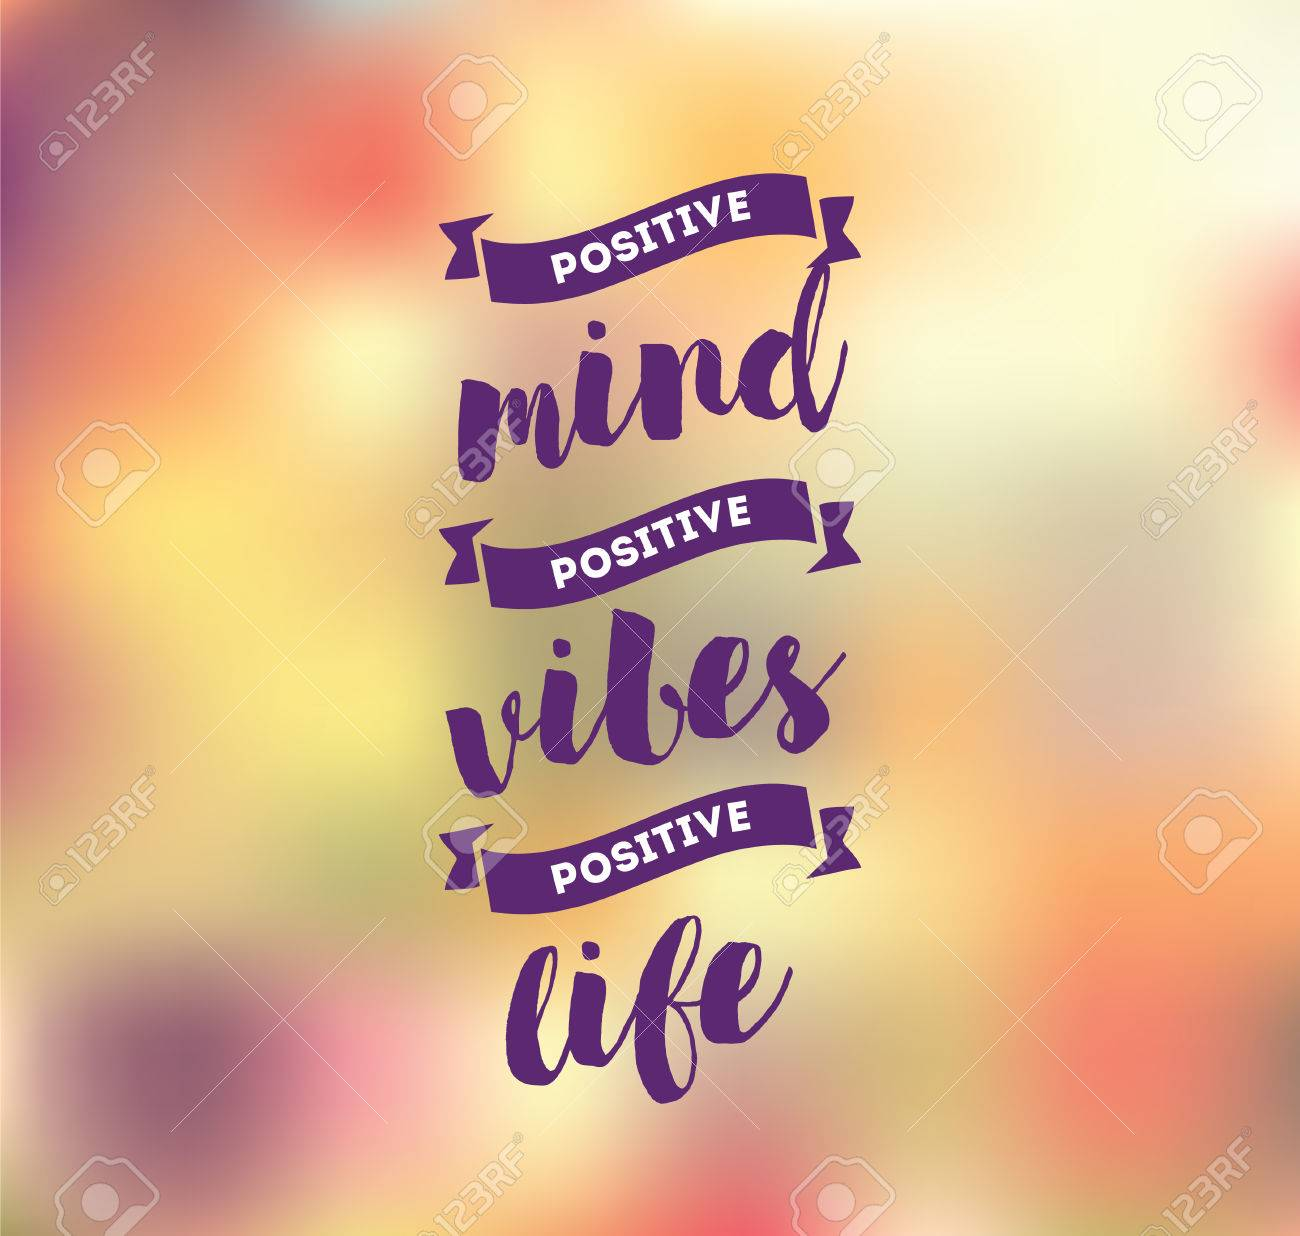 Positive mind, positive vibes, positive life  Inspirational quote,